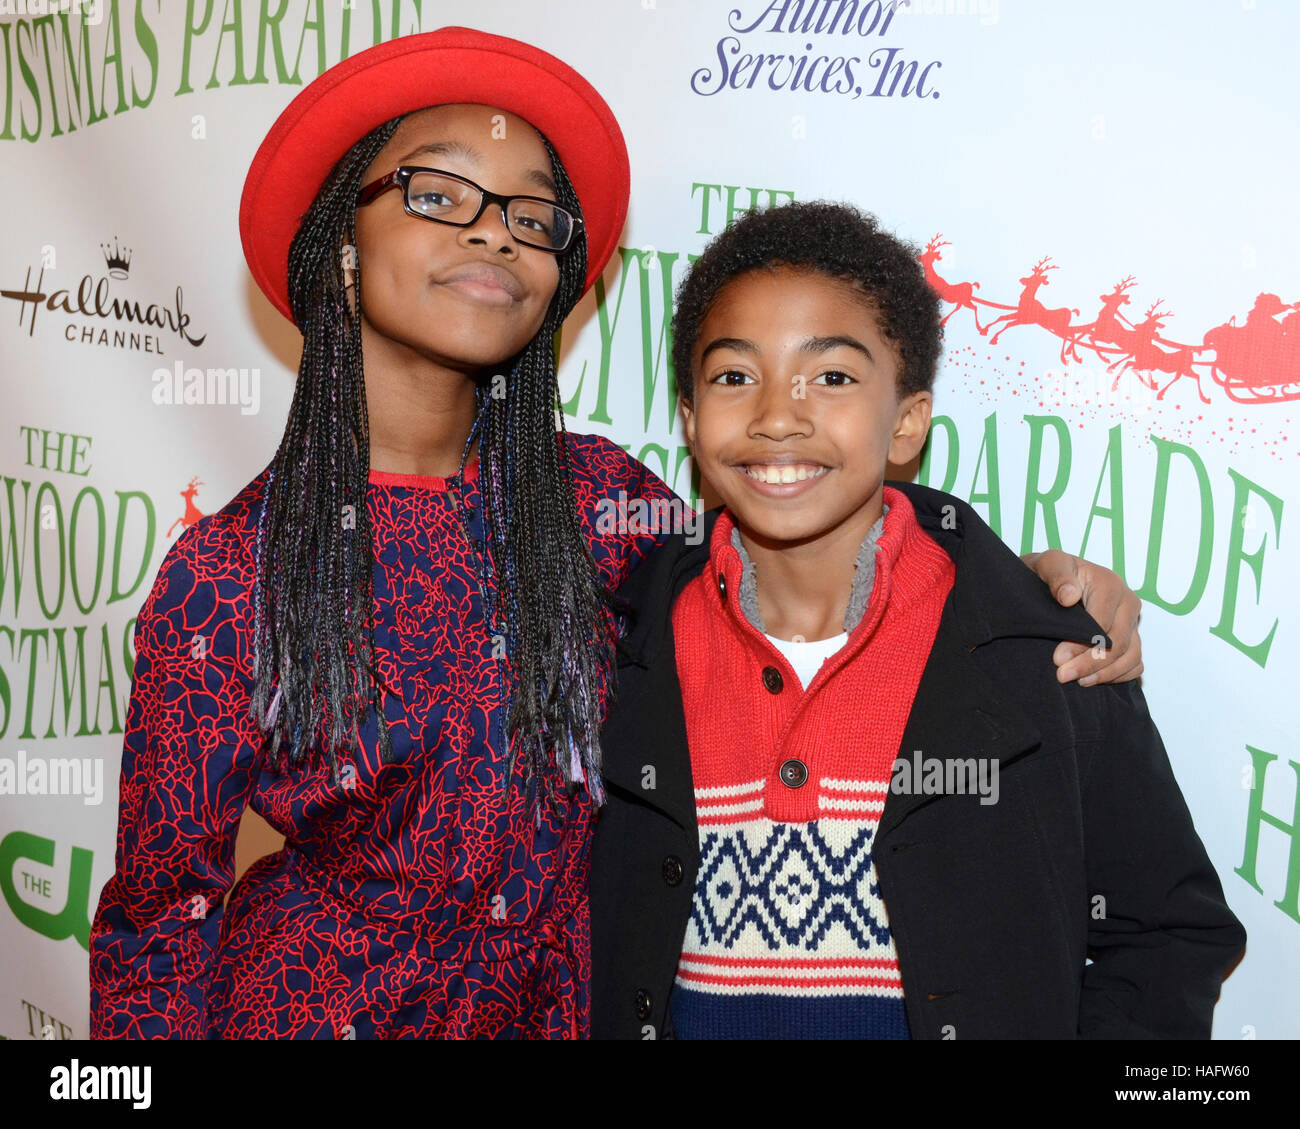 The Christmas Parade Hallmark.Marsai Martin And Miles Brown Arrives At The 85th Annual